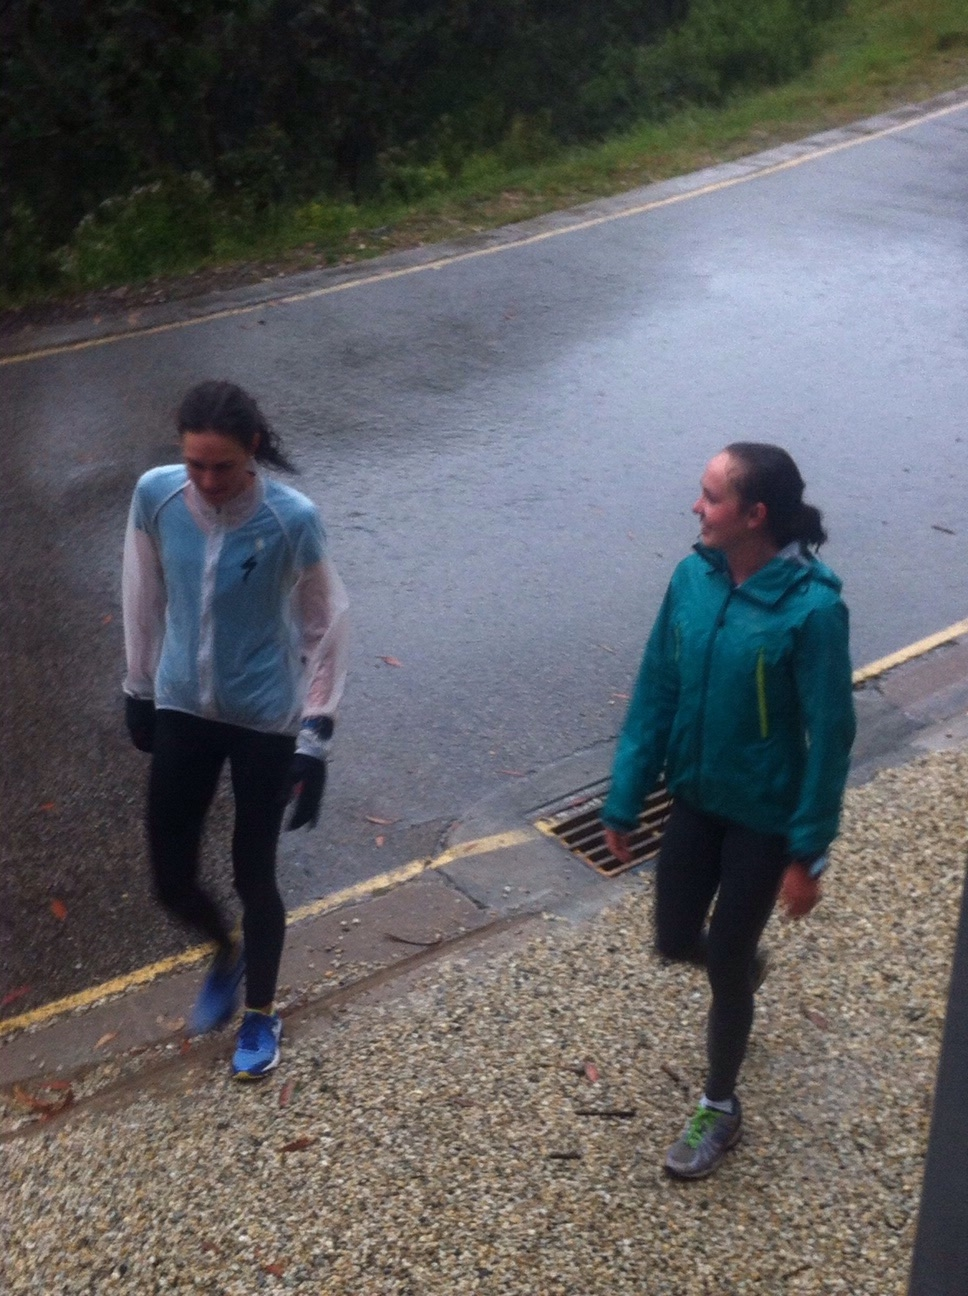 A rainy walk back from the trails in Falls Creek with Ellen Pennock.